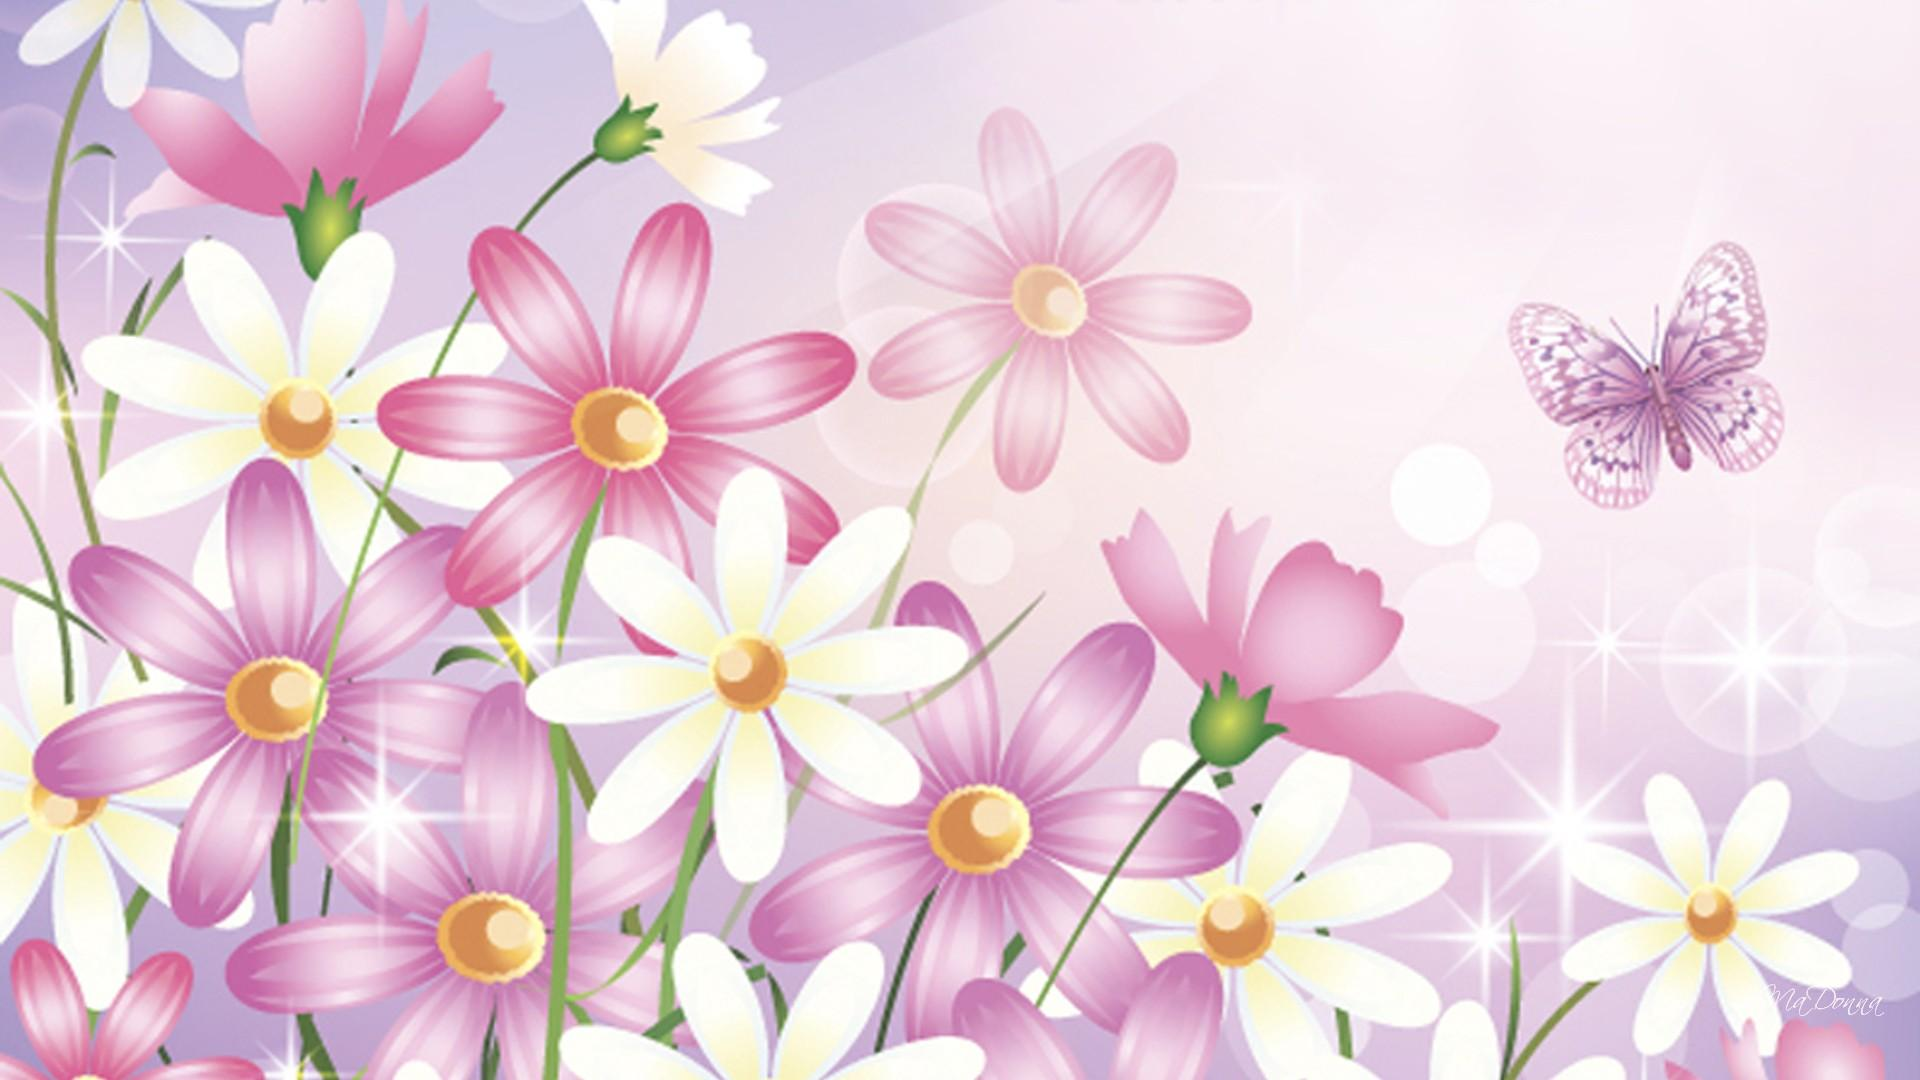 White And Pink Flowers Wallpaper Wallpapersafari